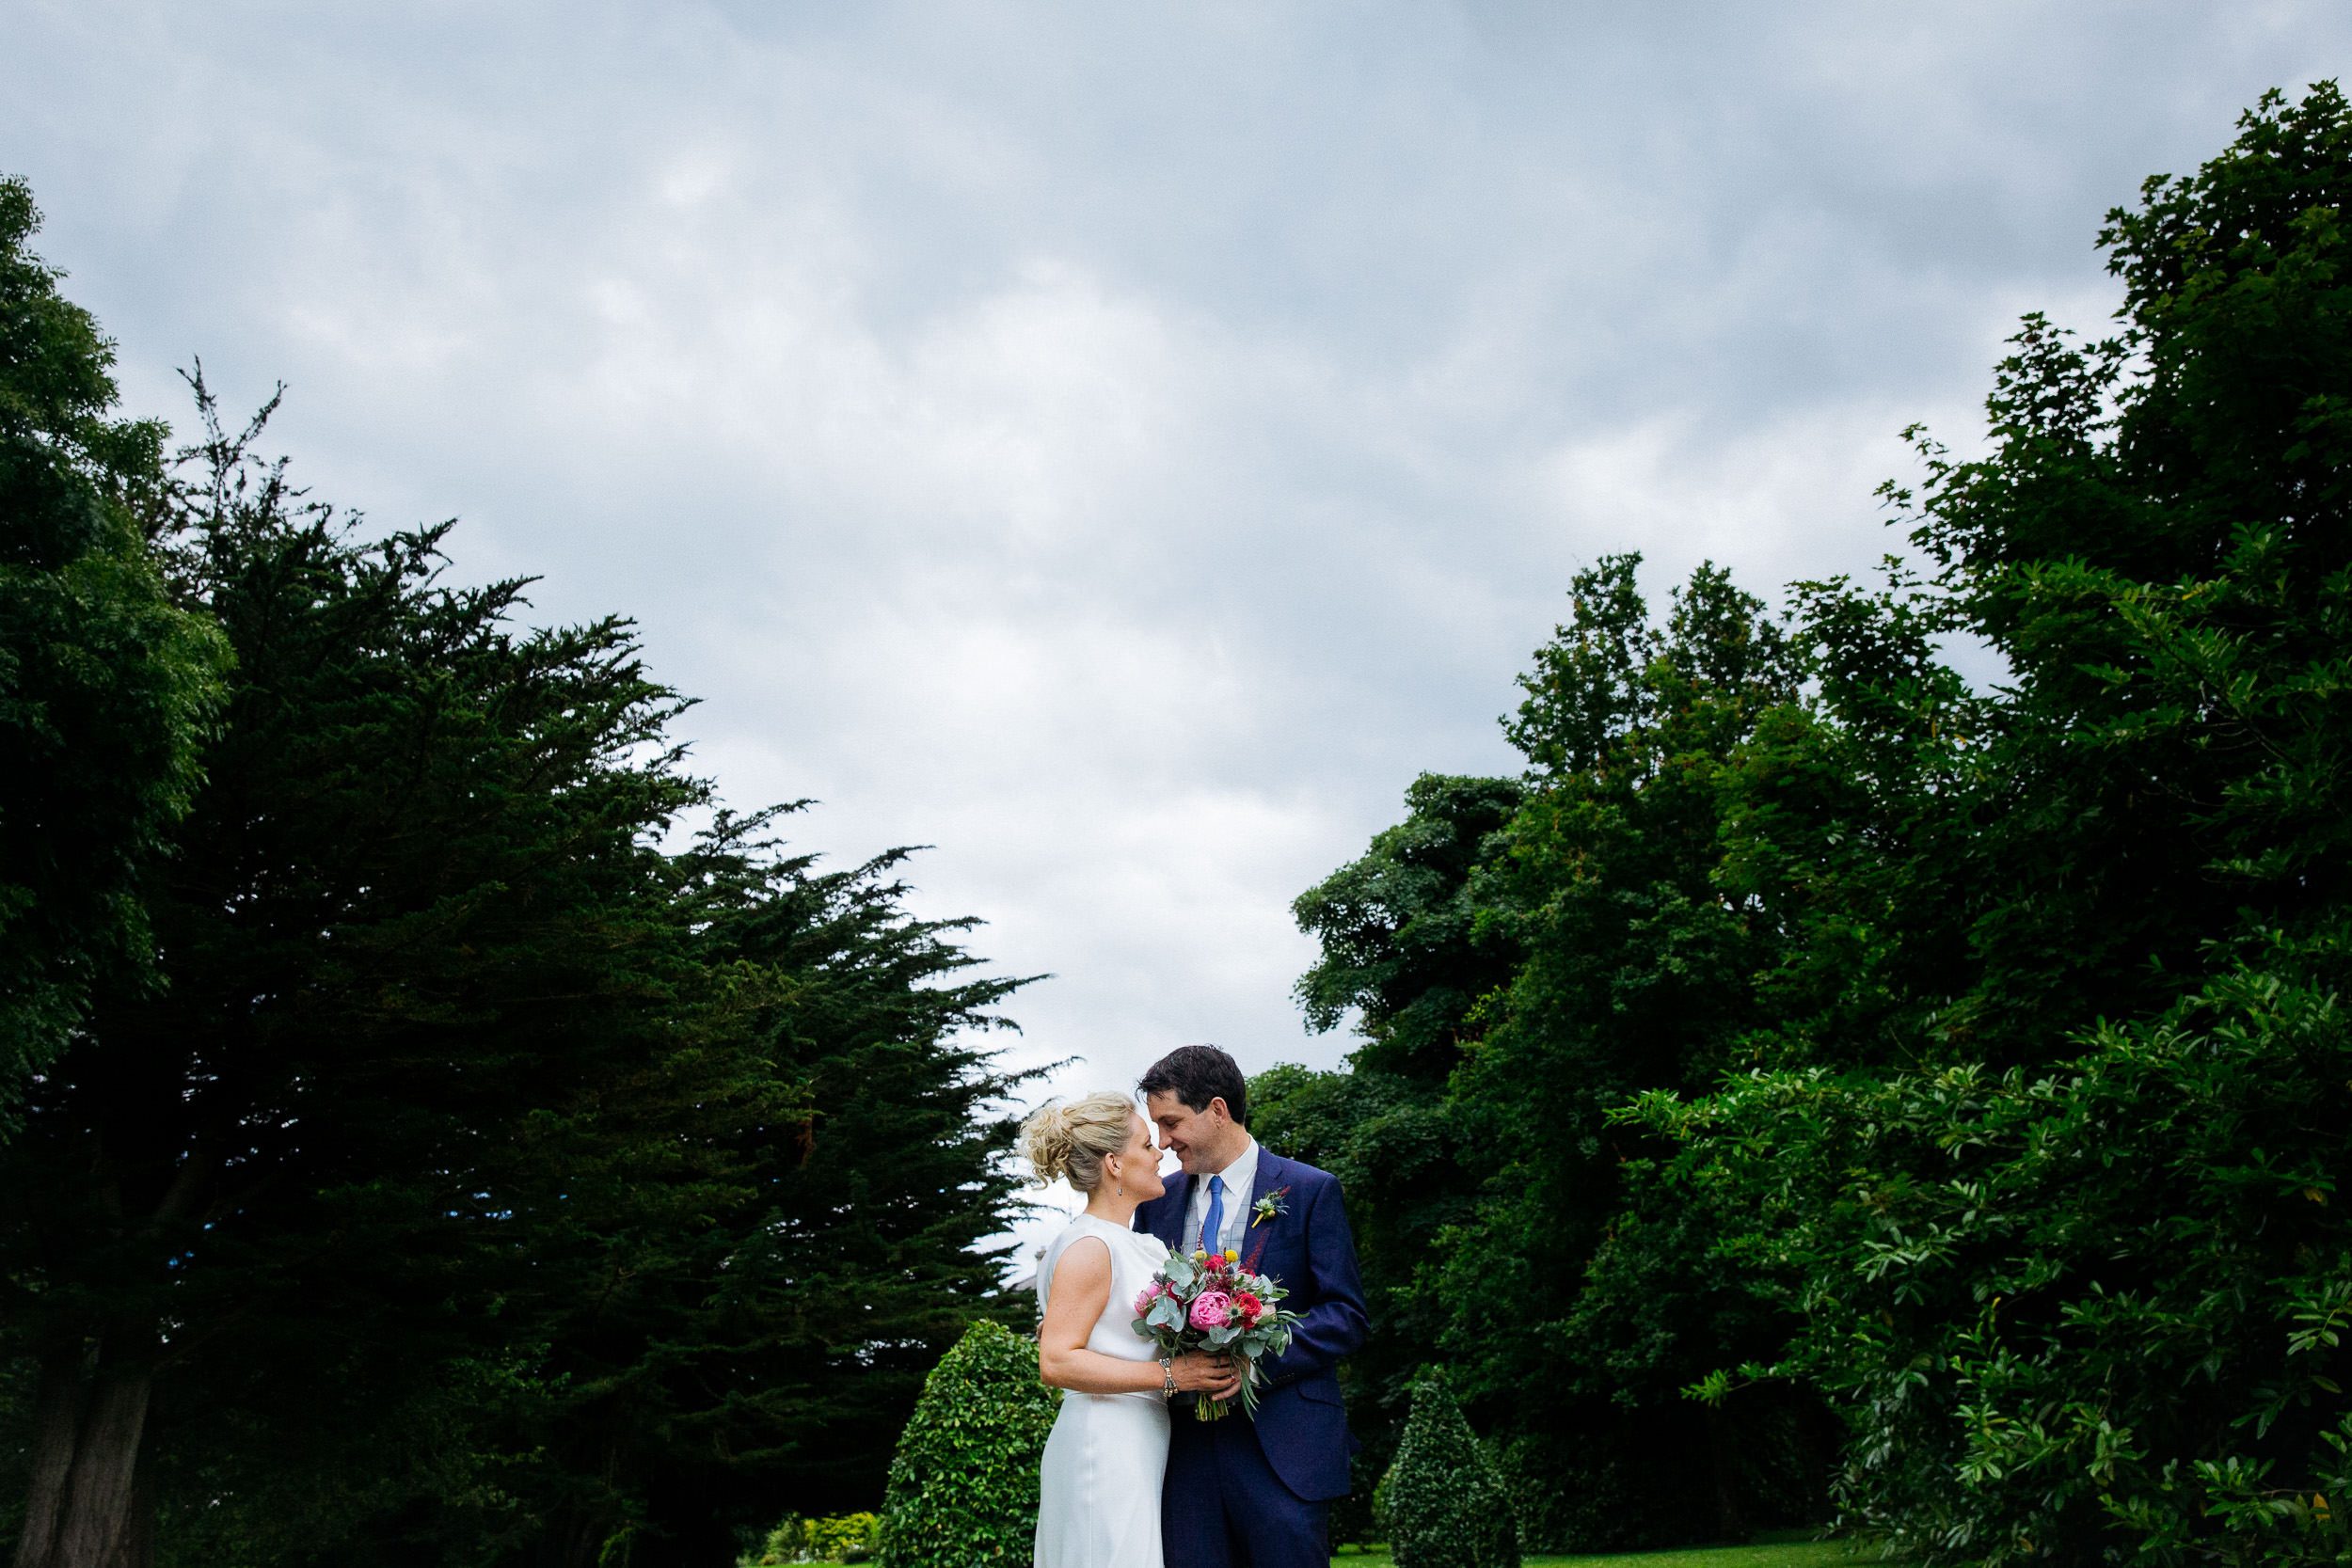 clairebyrnephotography-fun-wedding-photographer-ireland-creative-40.jpg